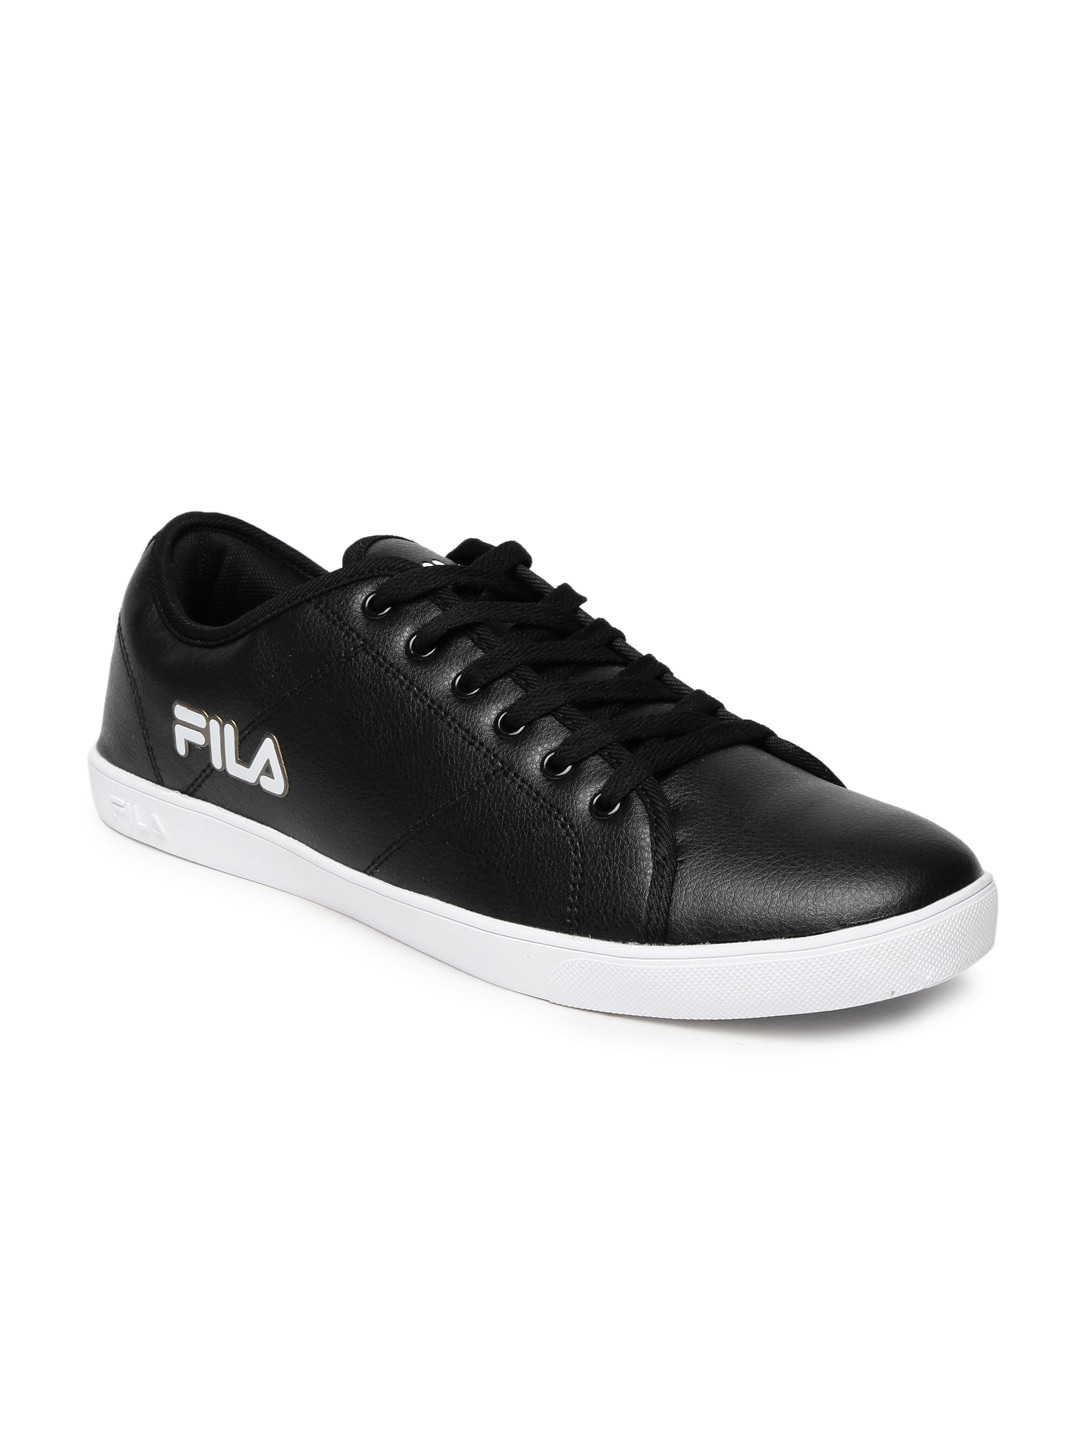 8c09eccb0577 Fila Shoes - Buy Original Fila Shoes Online in India